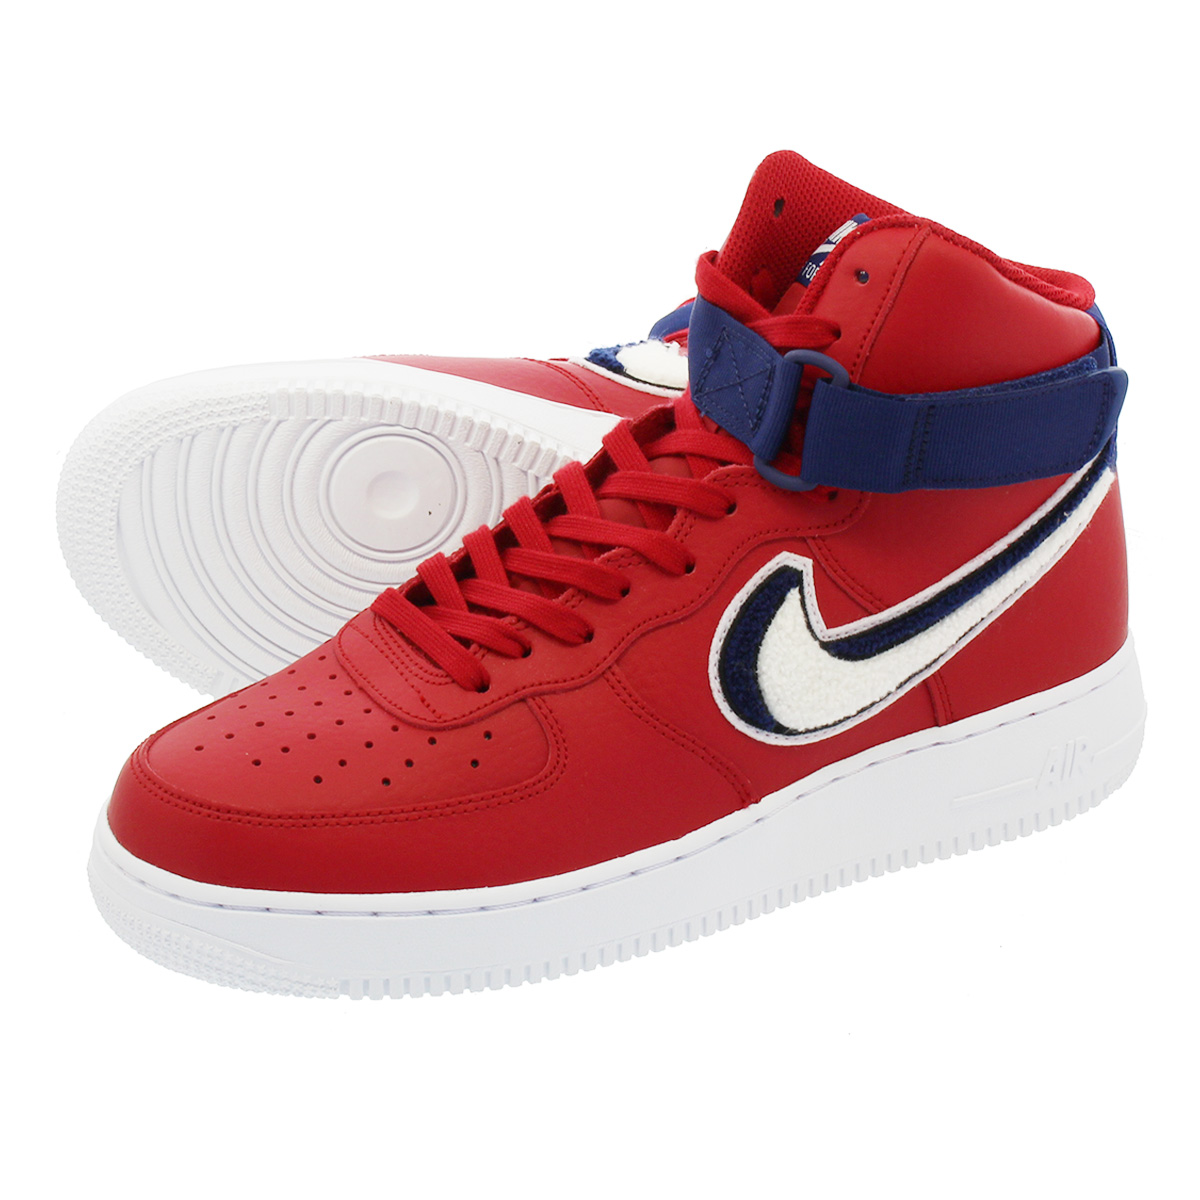 403 Redwhitevarsity 1 Force Blue Lv8 Gym Nike 806 High Air 603 07 dBCxoe